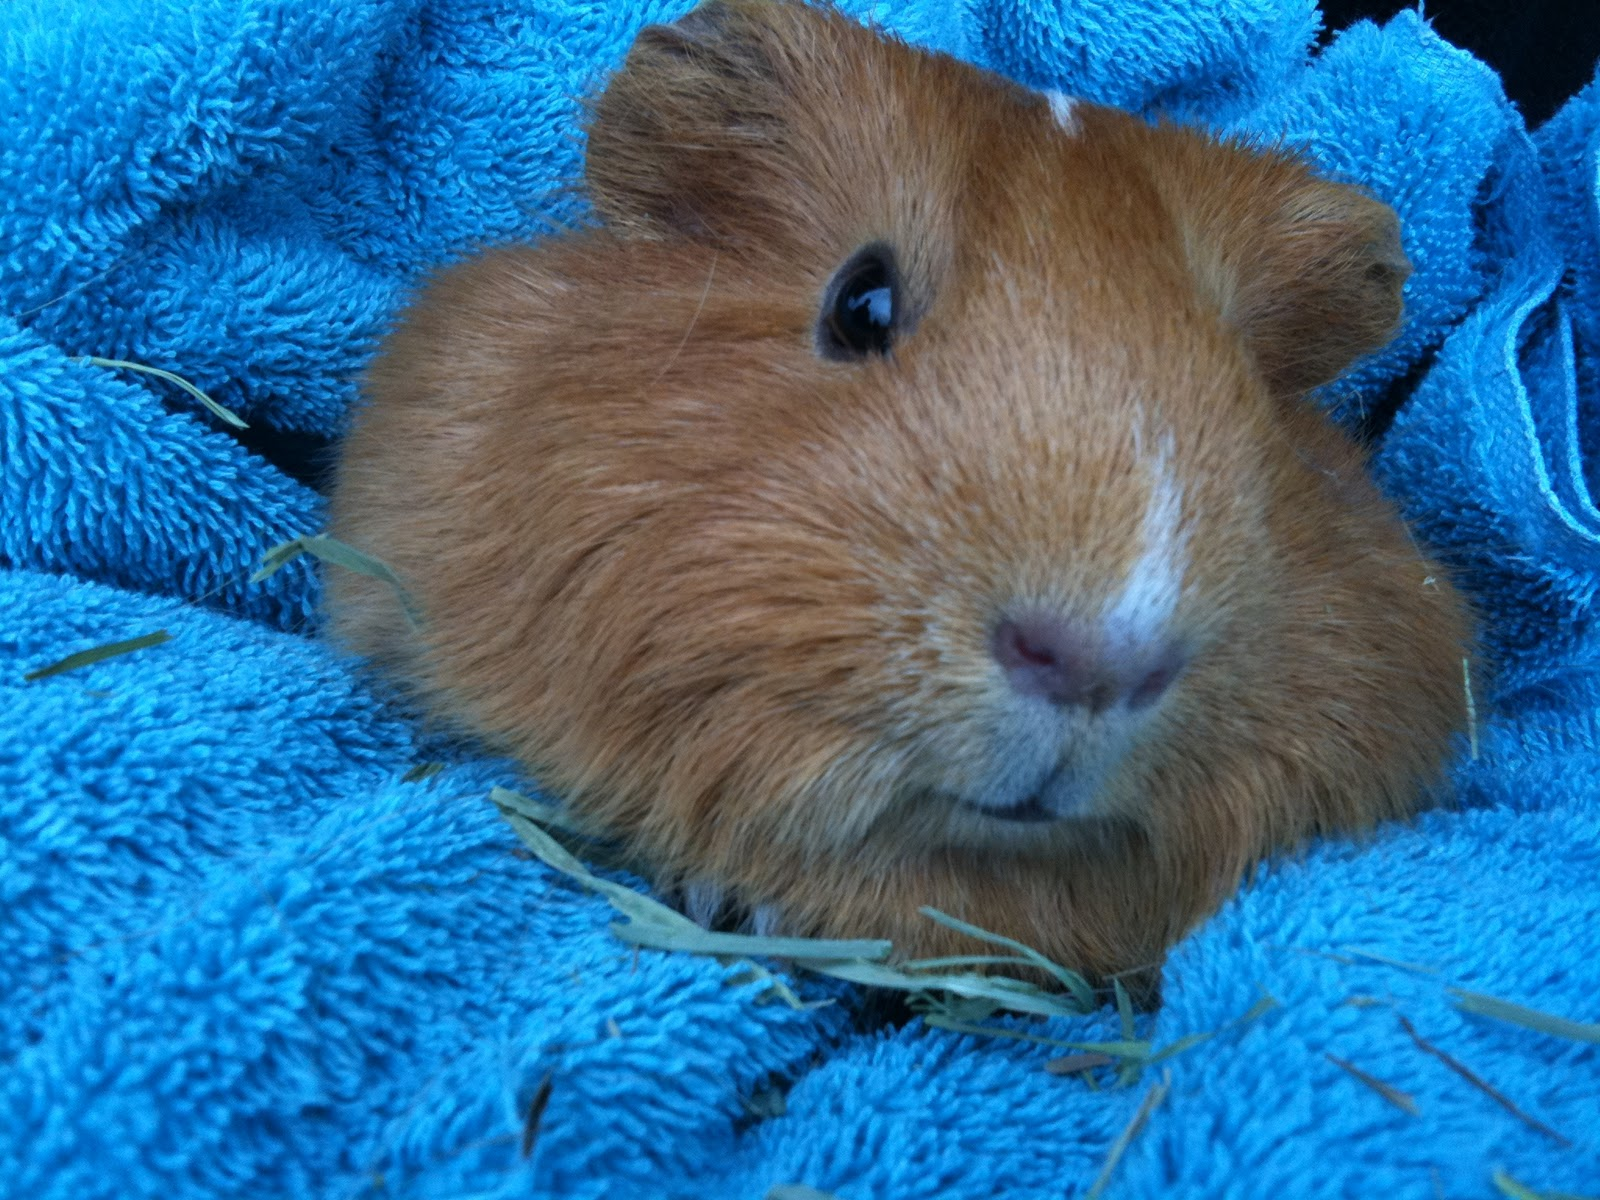 Guinea pig wildlife the wildlife for Guinea pig pictures free